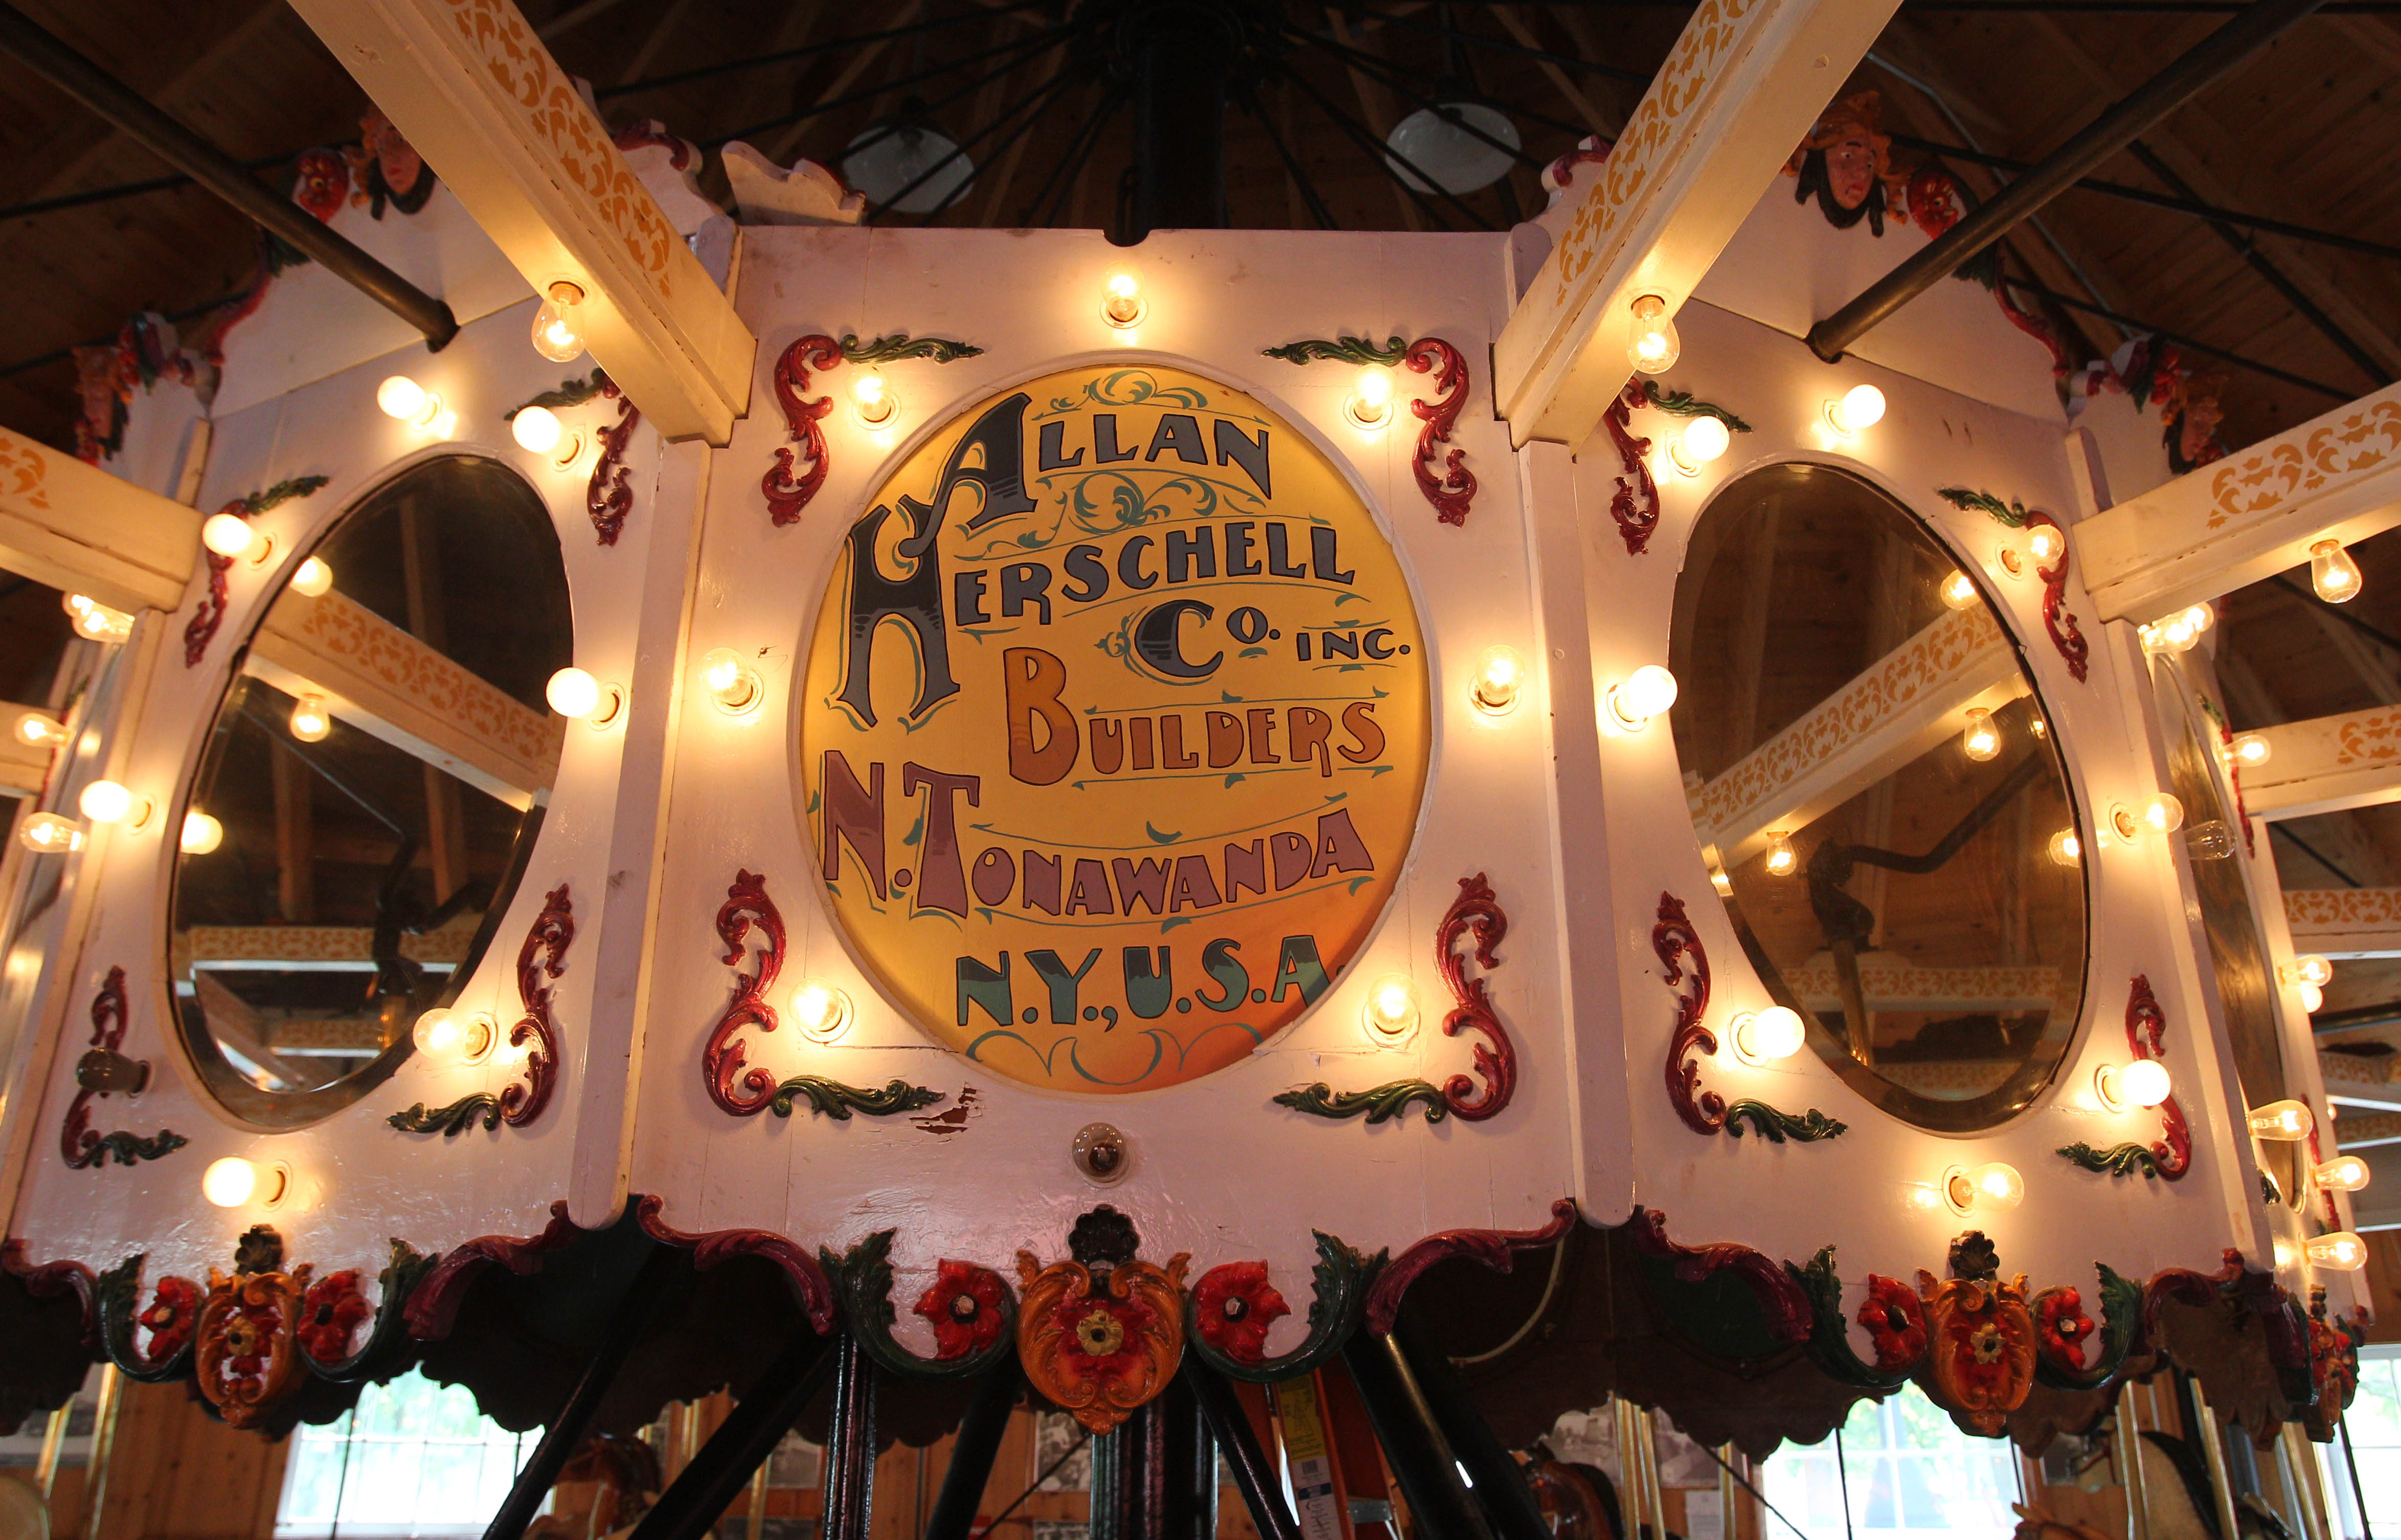 The Herschell Carrousel Factory Museum is one of 15 organizations to receive a $1,000 grant from the Give for Greatness fund.